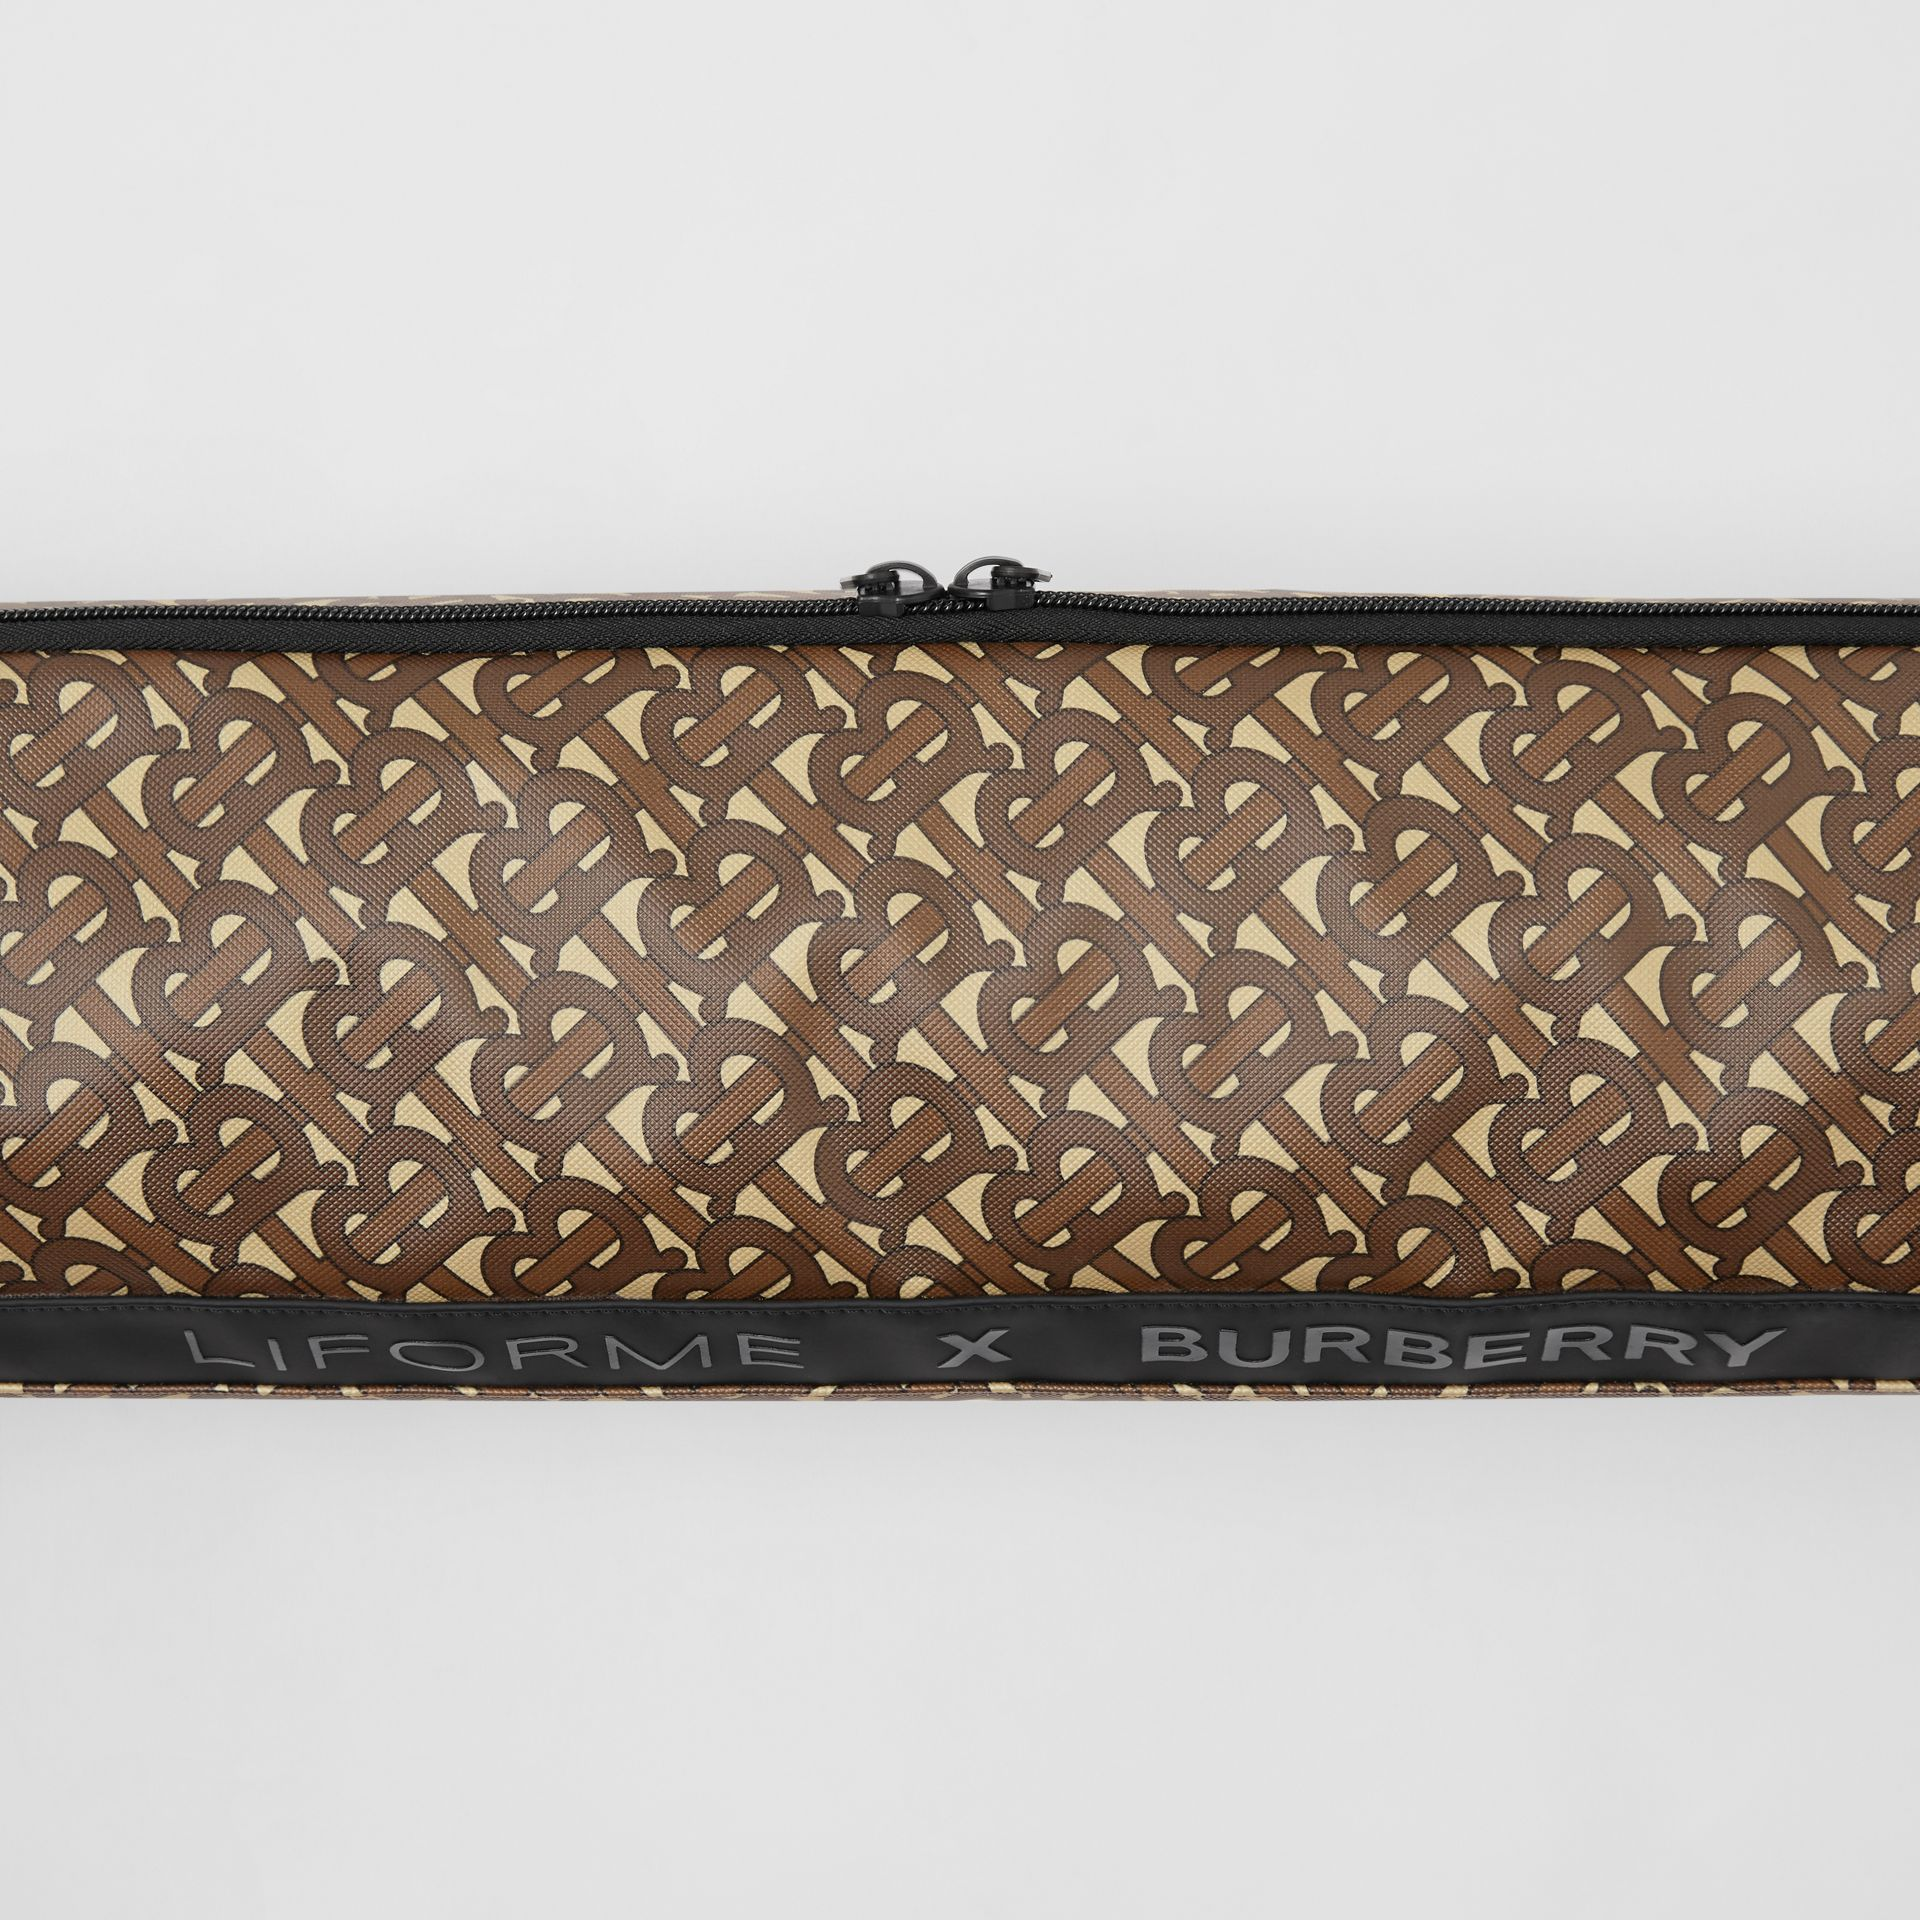 Liforme x Burberry Monogram Motif Yoga Mat in Bridle Brown | Burberry - gallery image 4